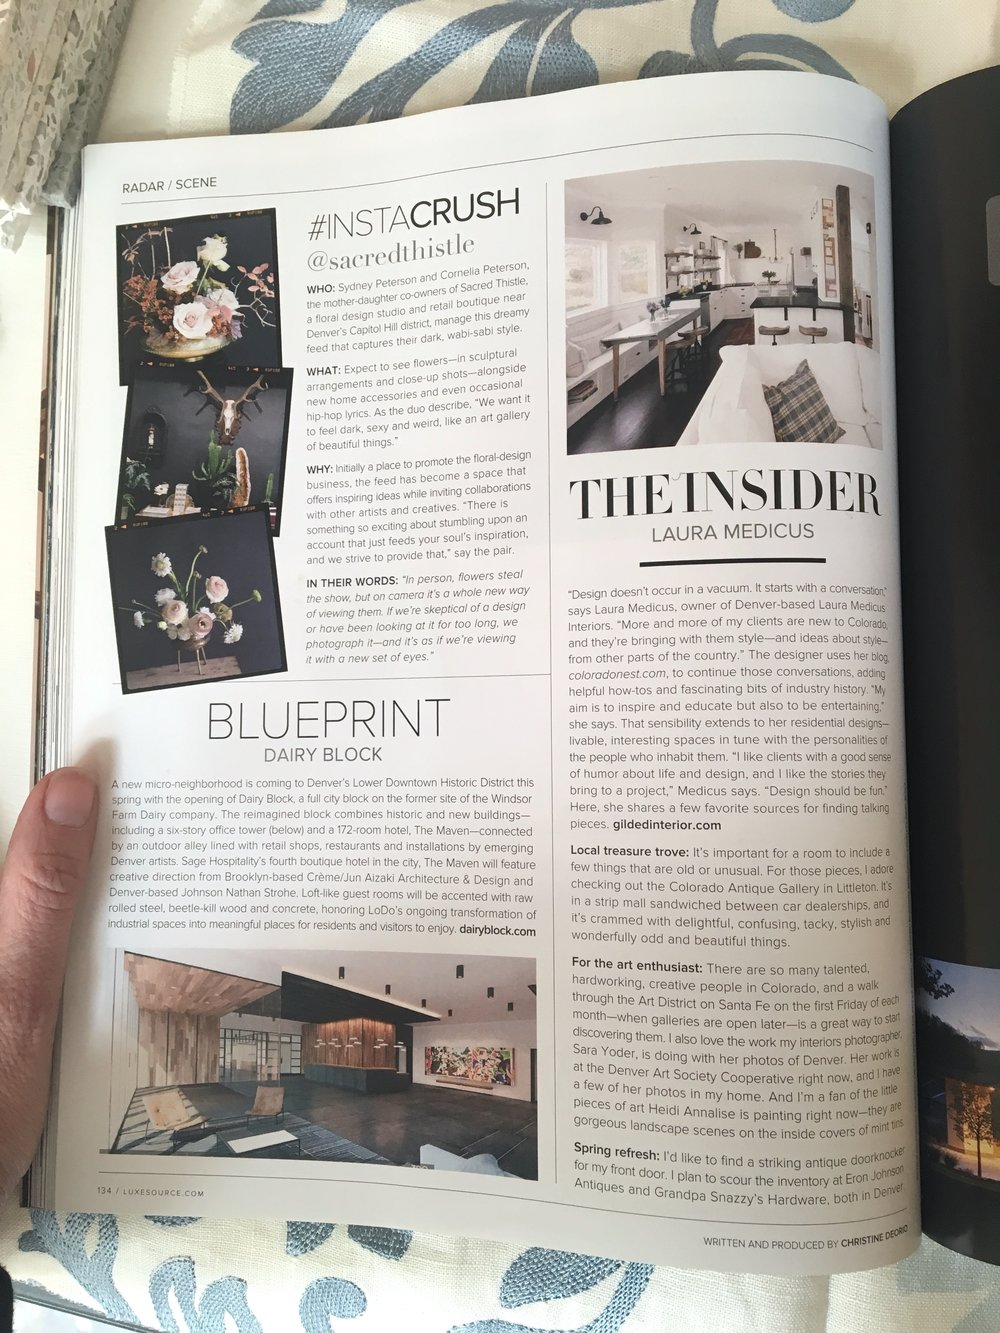 """The Insider: Laura Medicus"" in Luxe Interiors + Design, Colorado March/April 2017.  For more about this check out this Colorado Nest post."